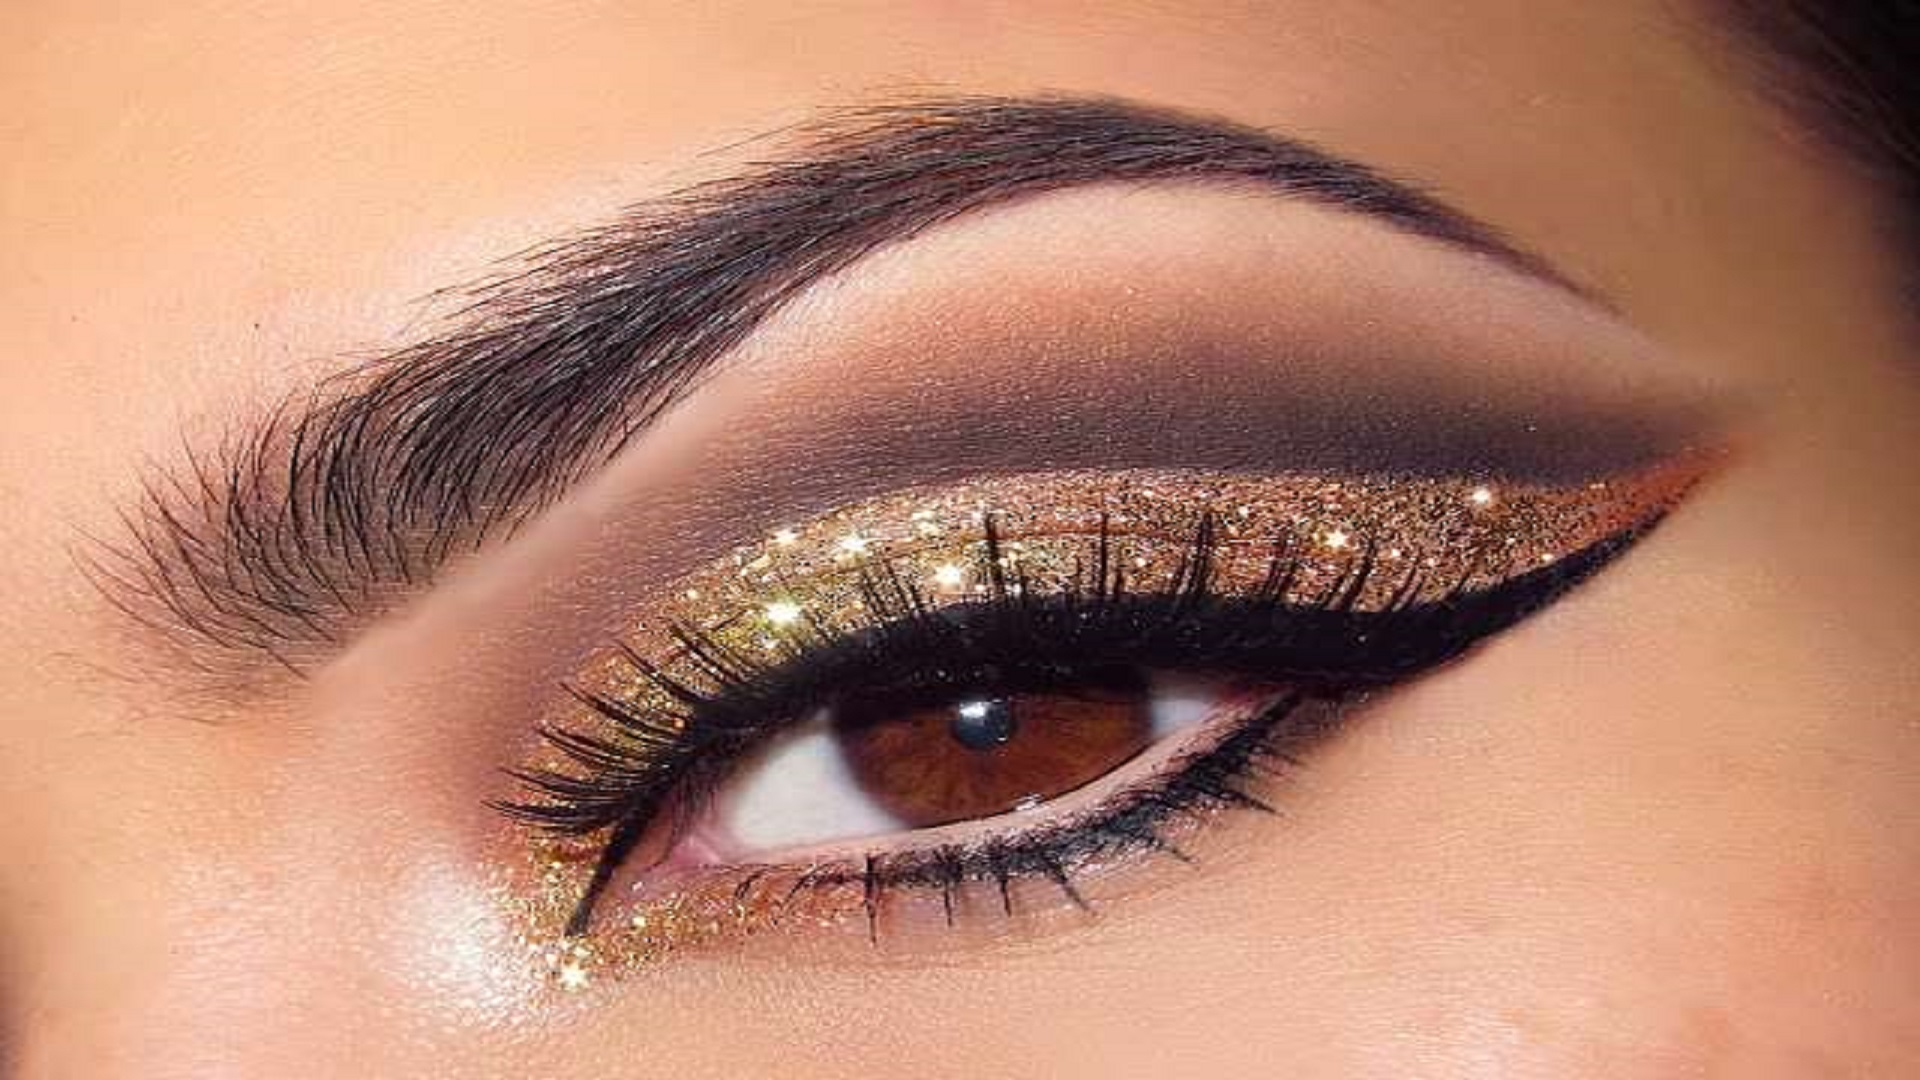 Glamorous Glitter Eye Makeup For You Hd Free Wallpapers For Desktop  on Images funny